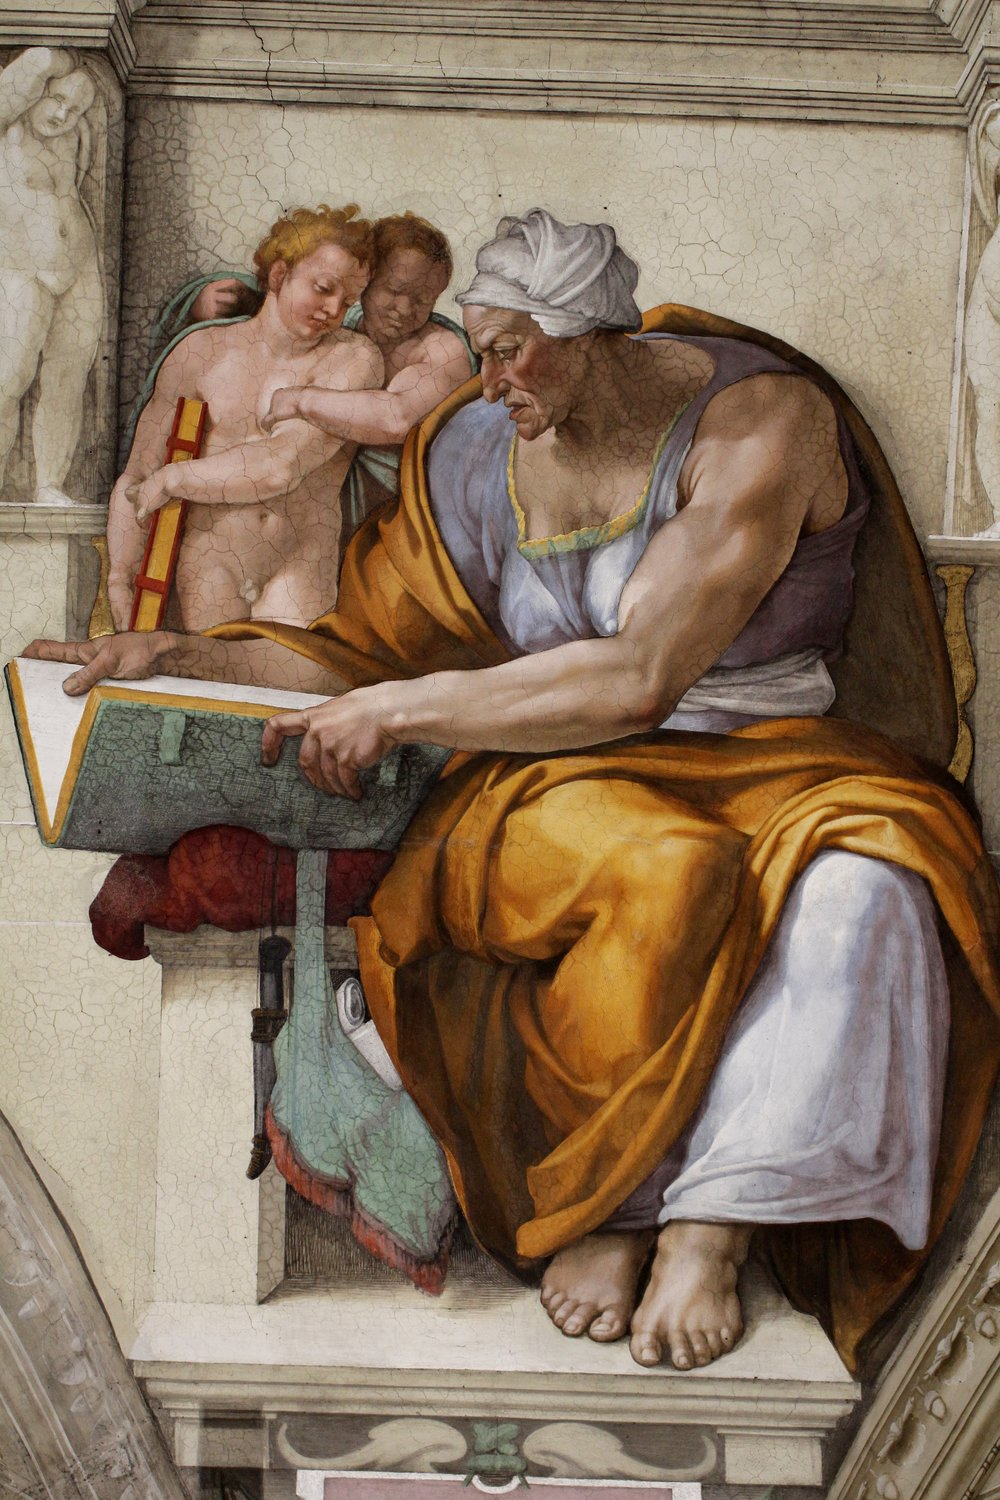 Michelangelo, Cumaen Sibyl from the Sistine Chapel Ceiling, painted 1508-1512